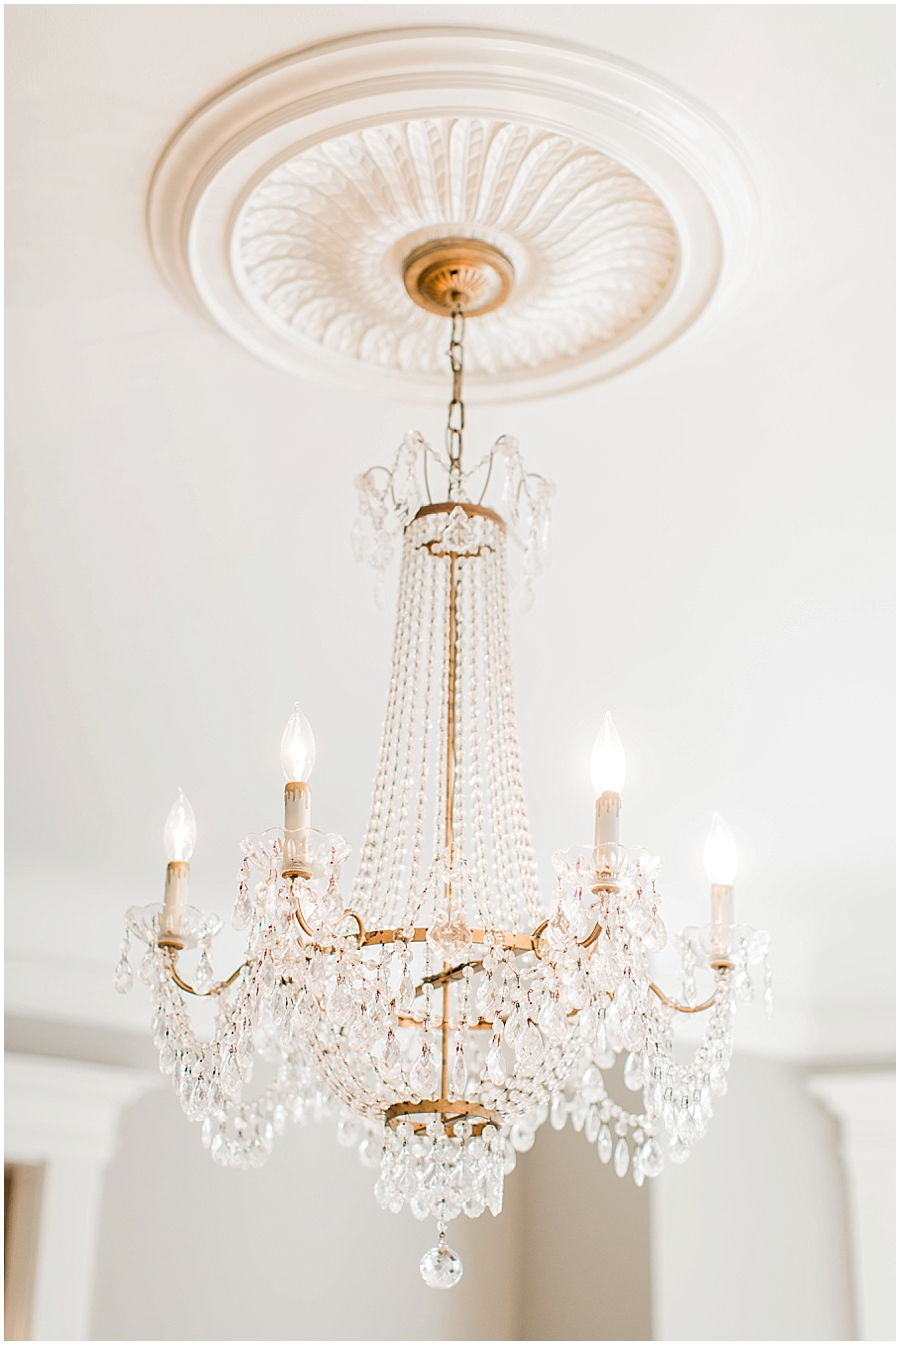 Chandelier at Missouri Wedding Venue in Springfield, MO - Haseltine Estate